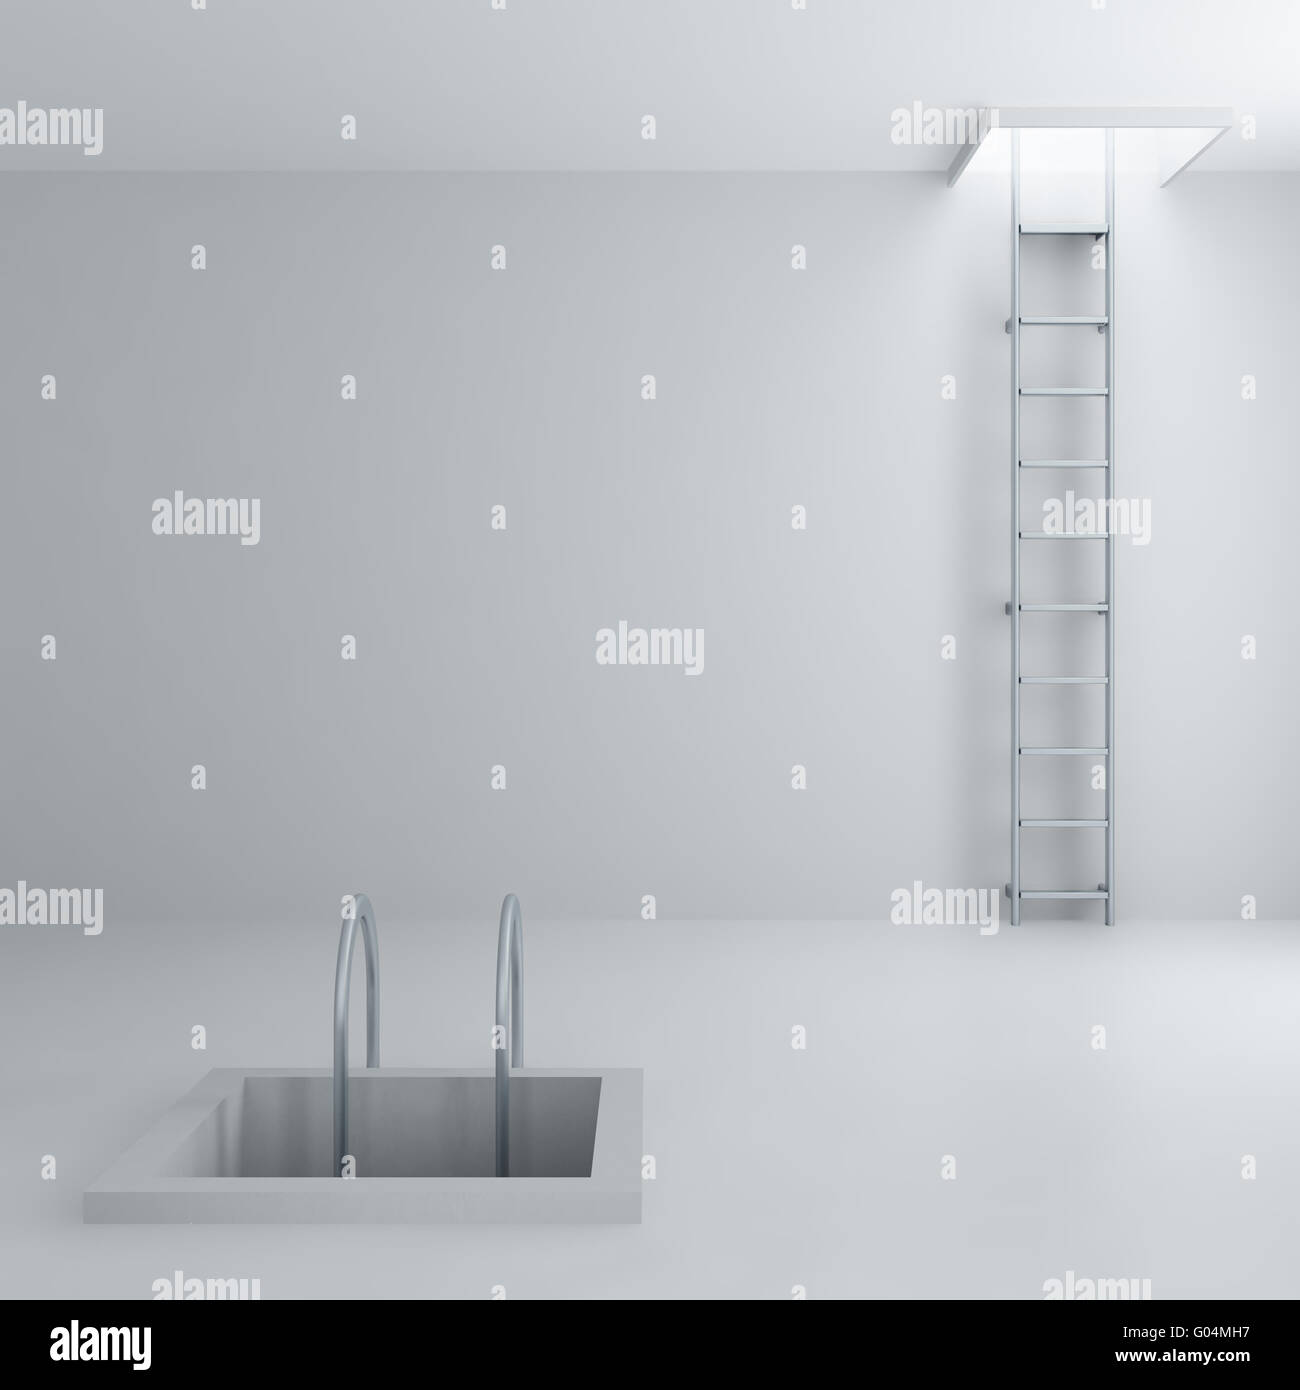 Ladders upwards and downwards in a light room - Stock Image